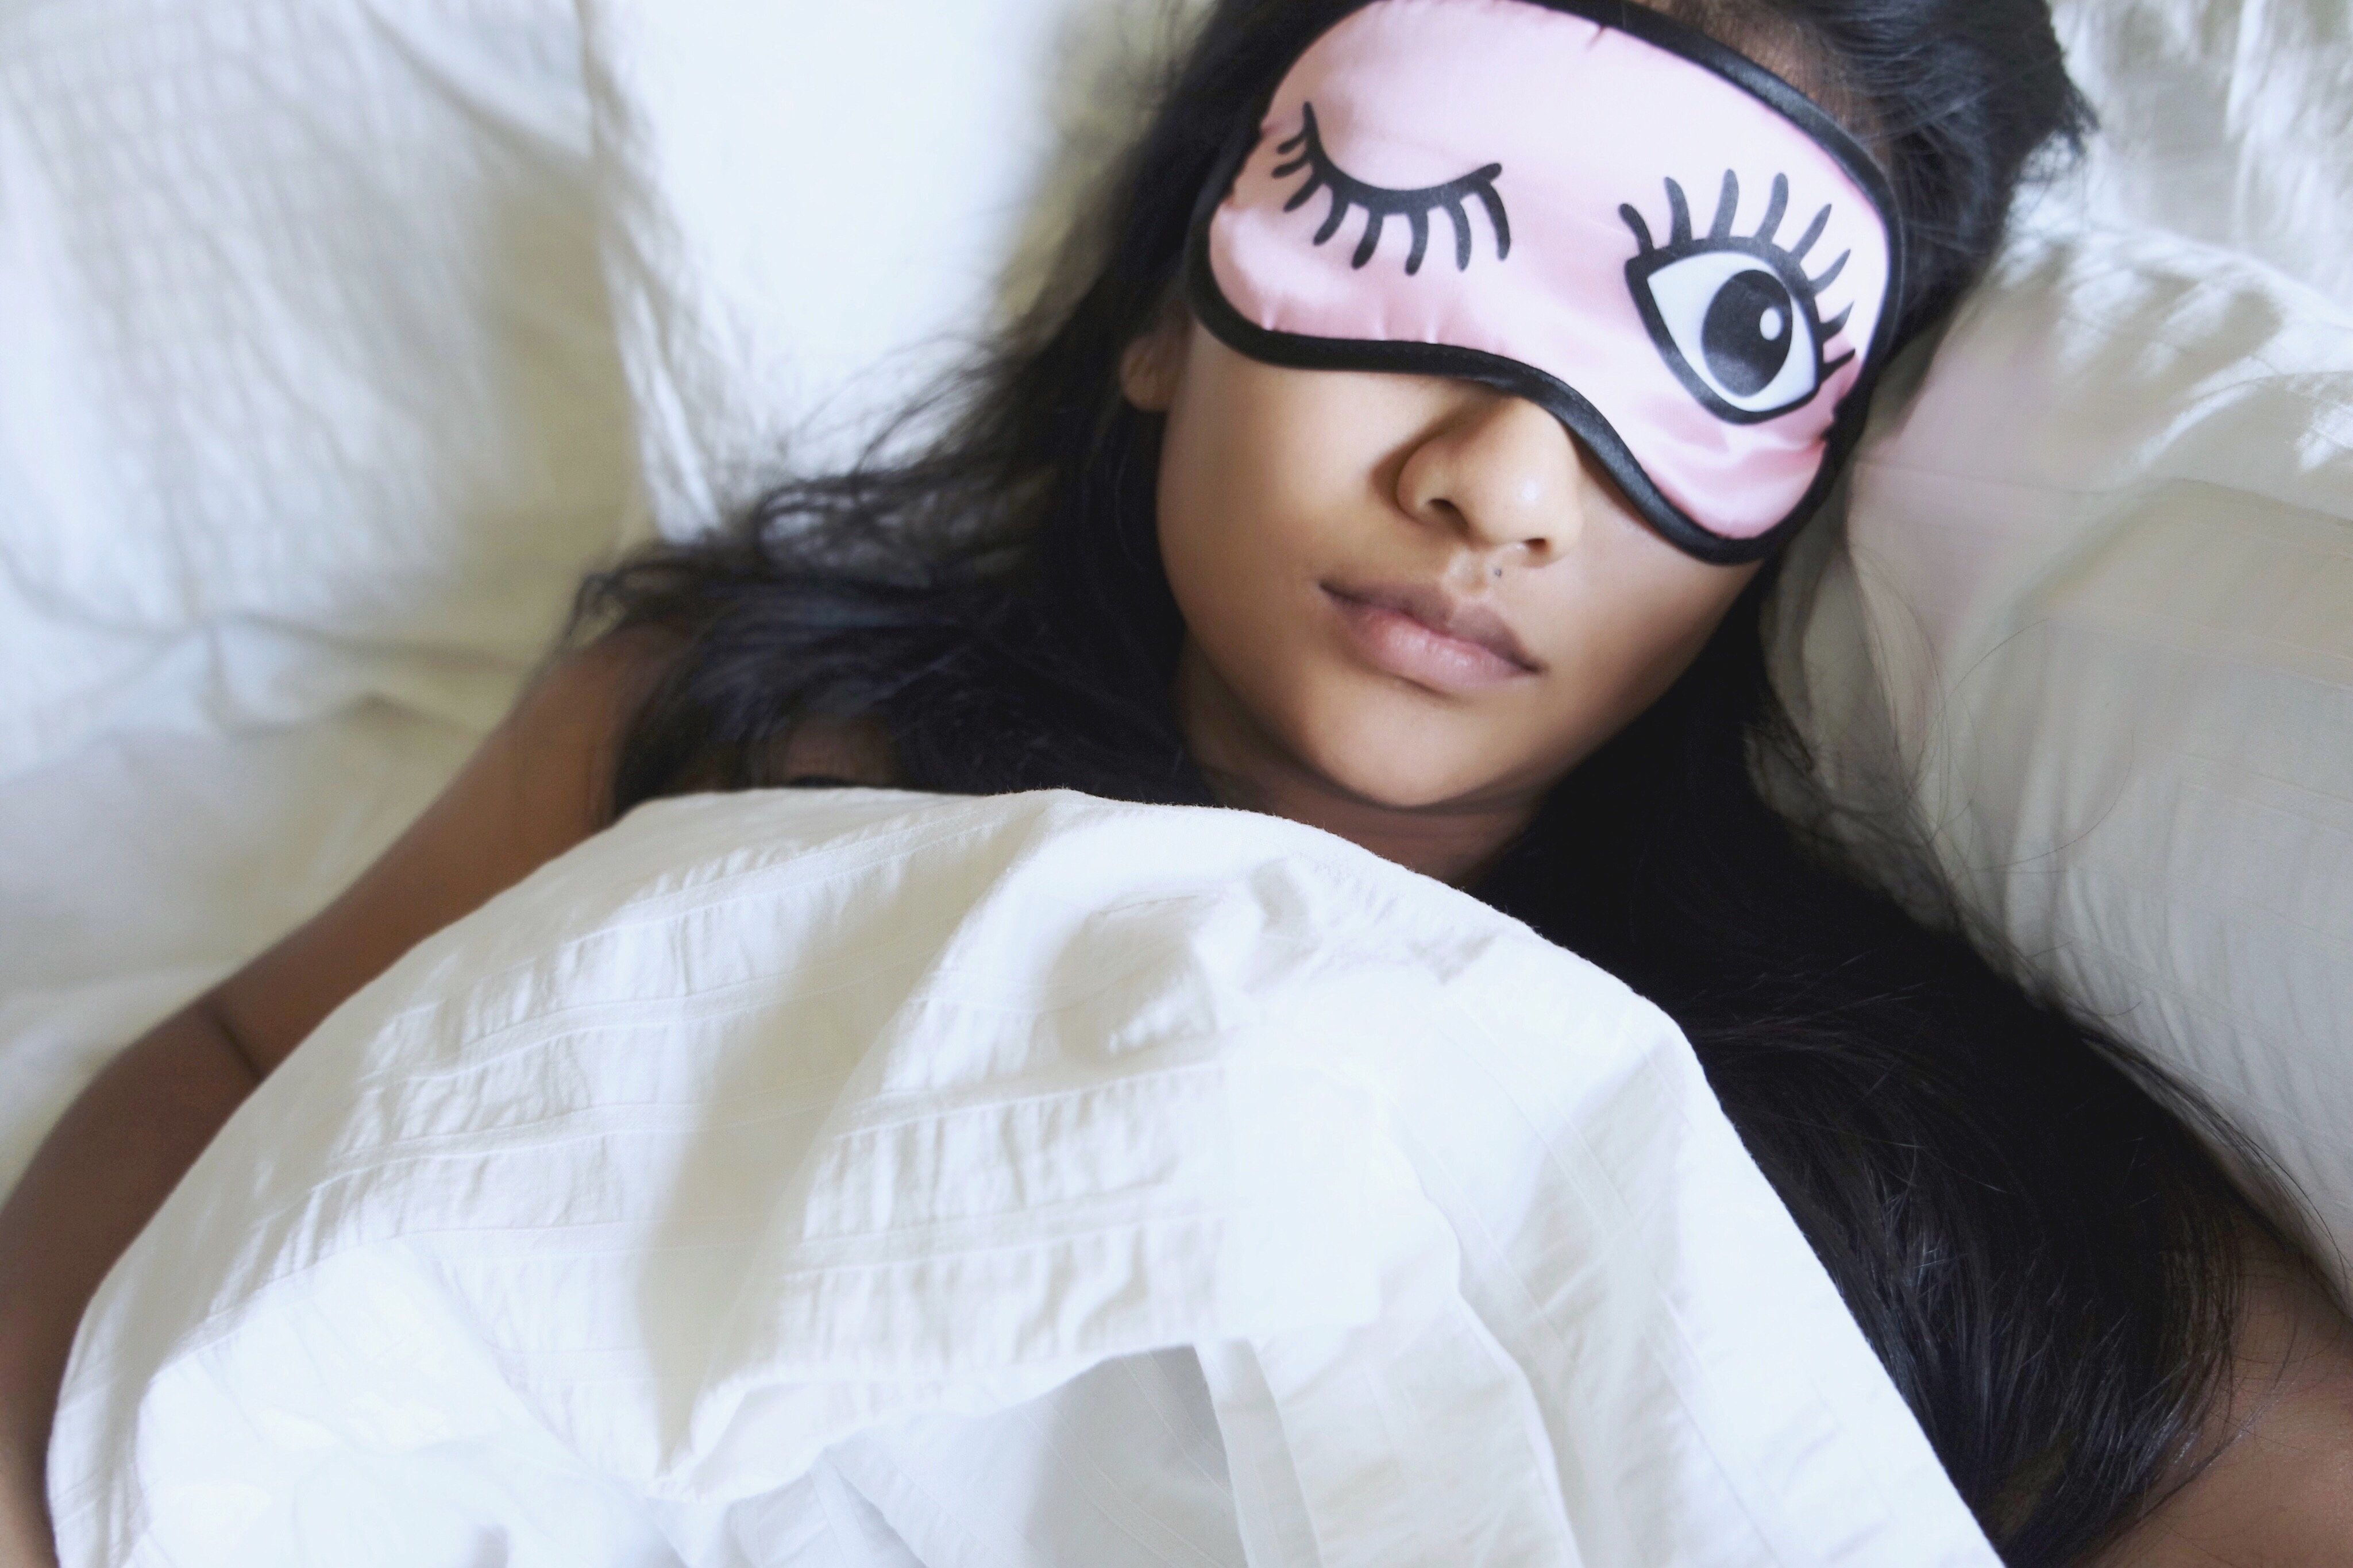 Regularly sleeping 10 or more hours could be a sign a person should see a physician.